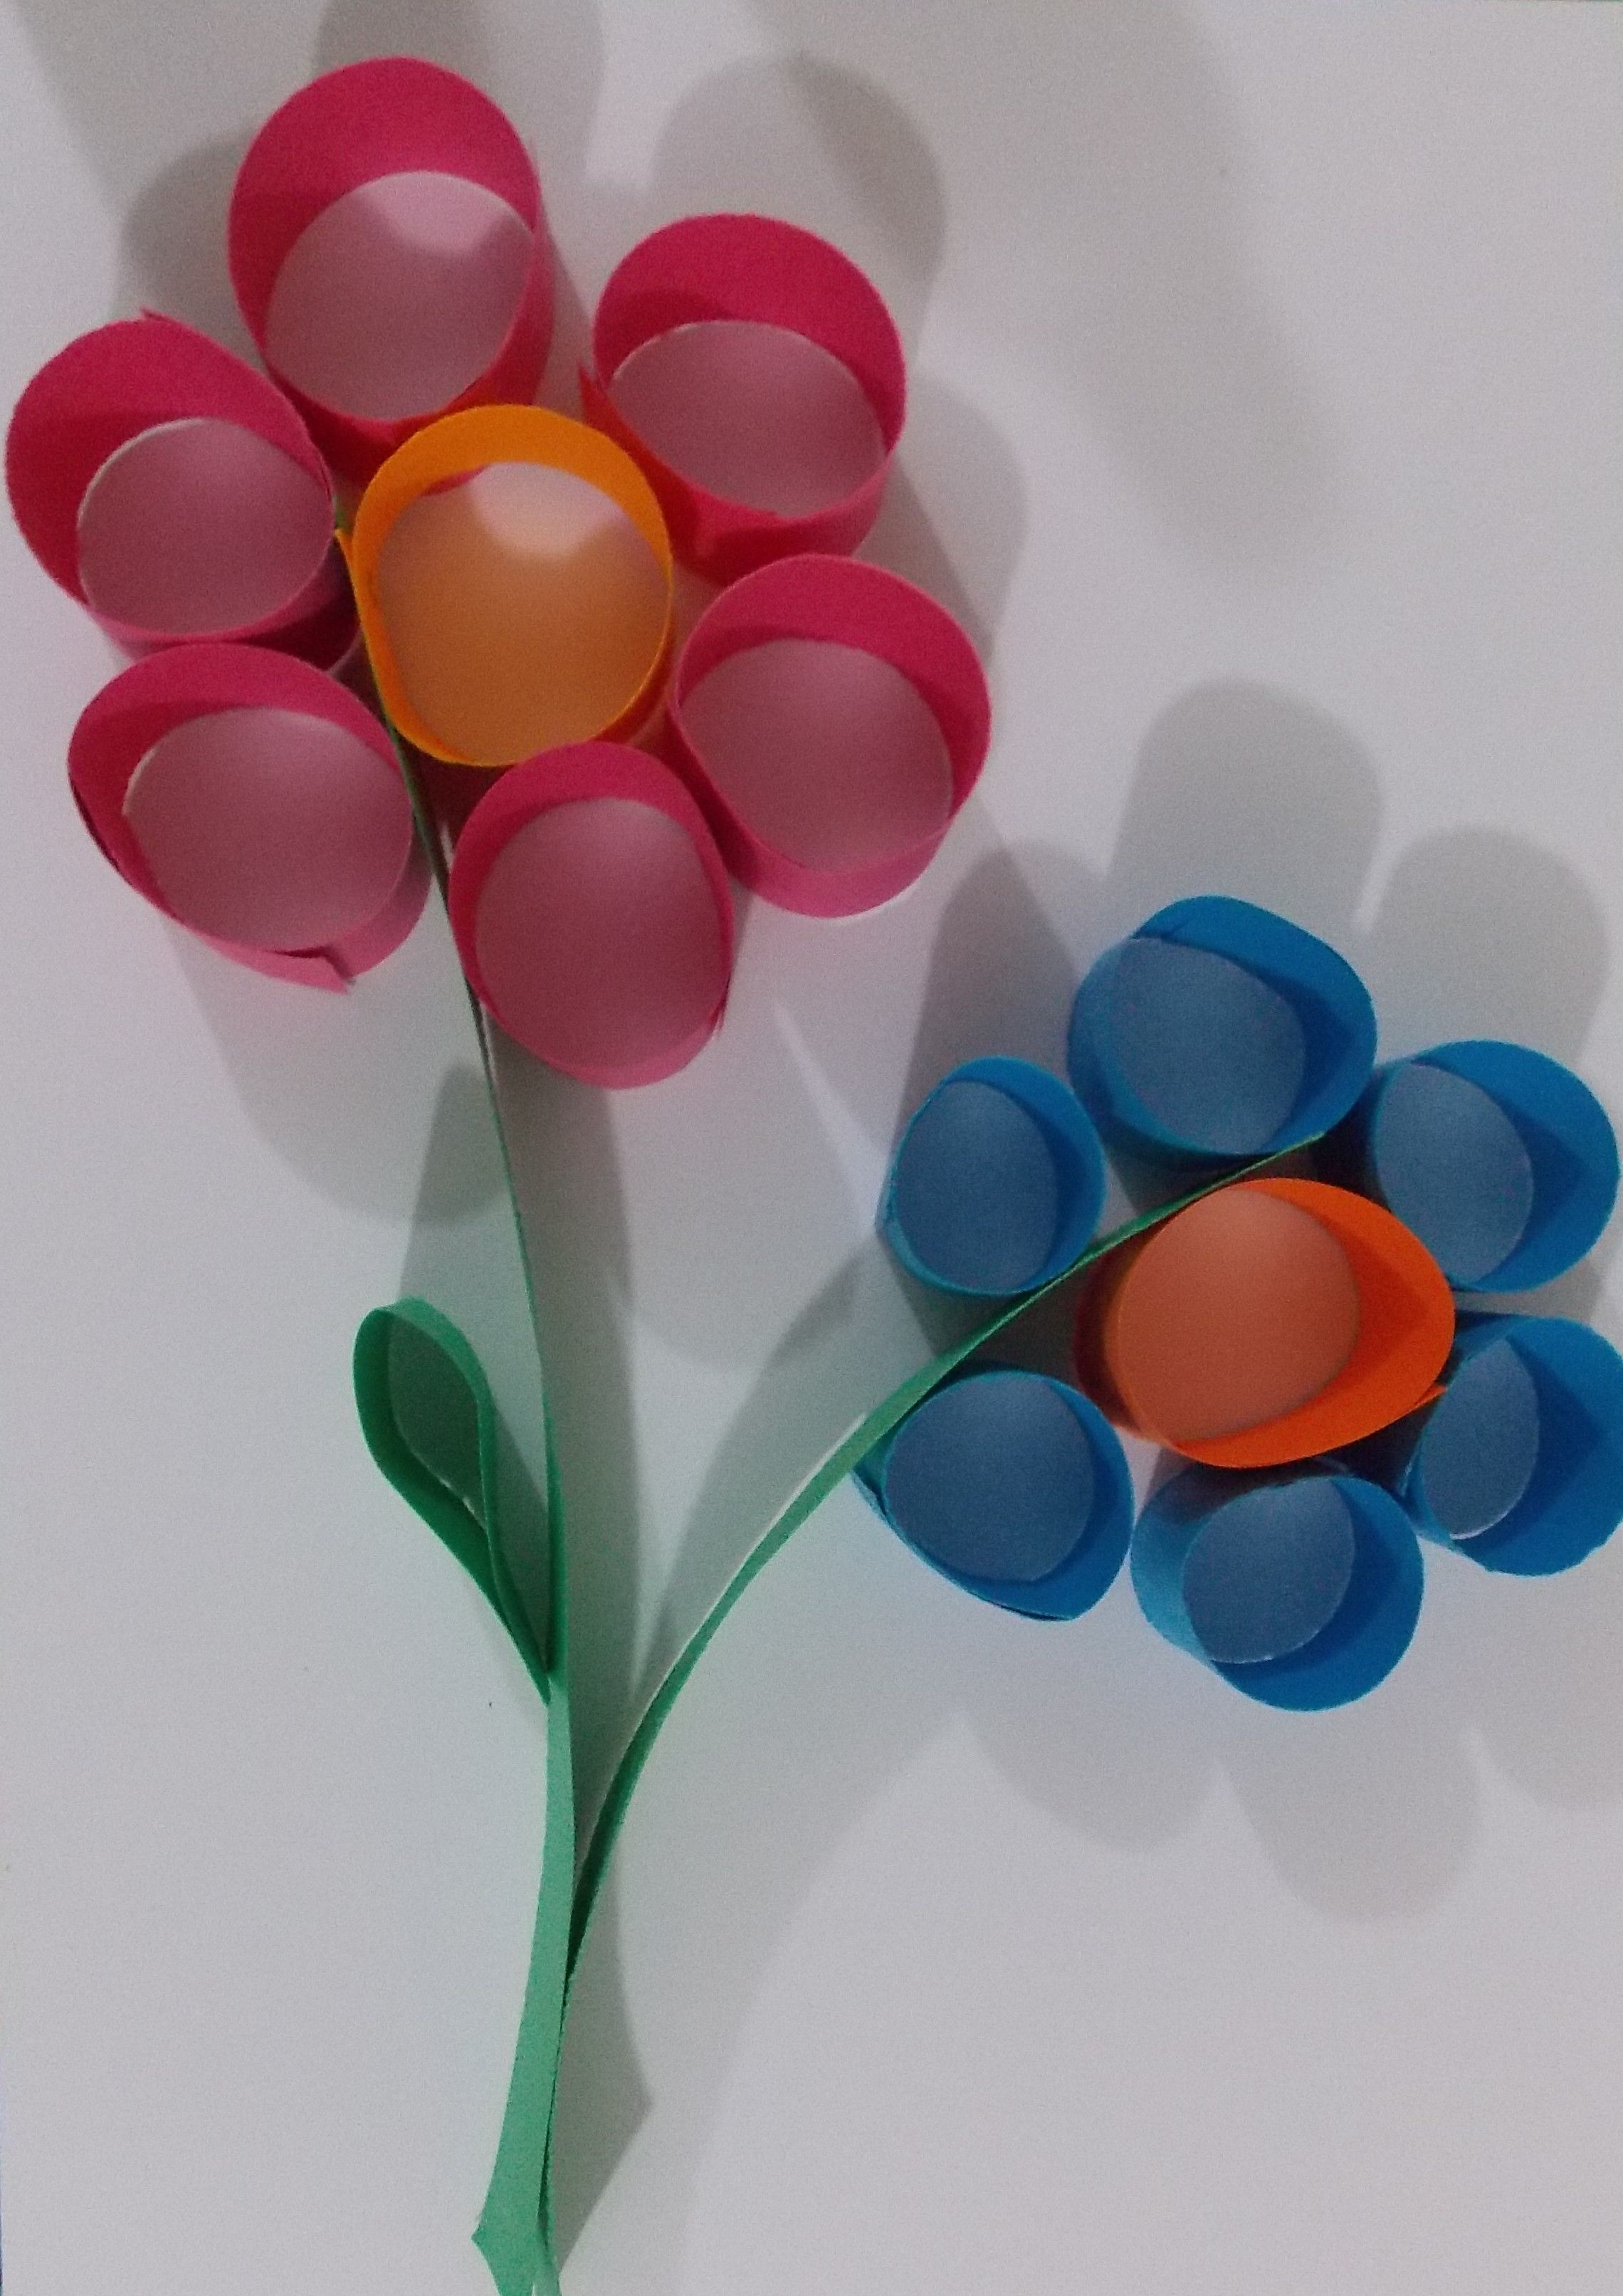 Flower paper craft easy paper crafts easy art projects for Art and craft with paper easy